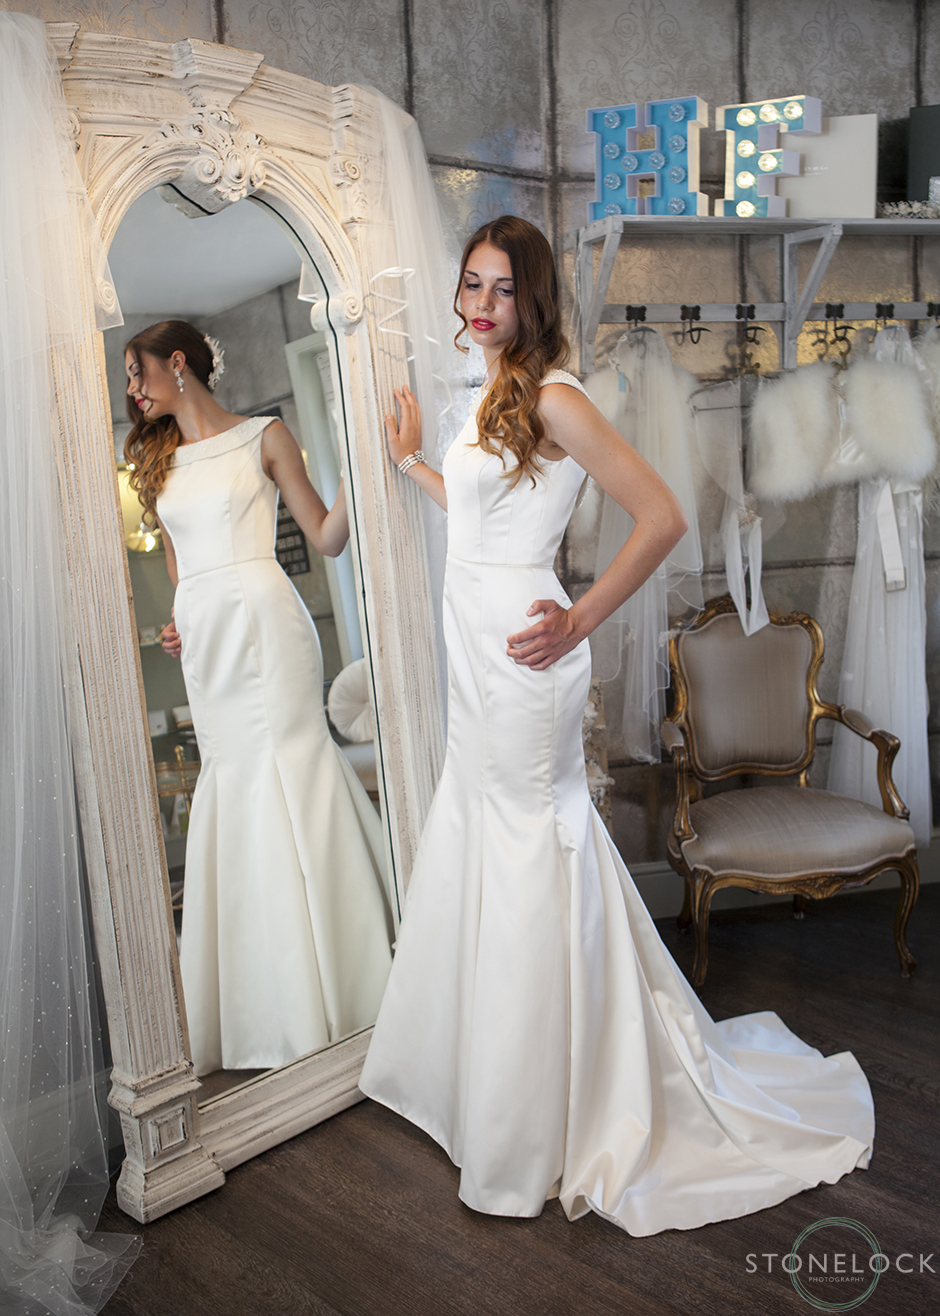 A model stands in front of a floor length mirror wearing Paloma Blanca 4414 wedding dress at Helena Fortley Bridal Boutique in Caterham